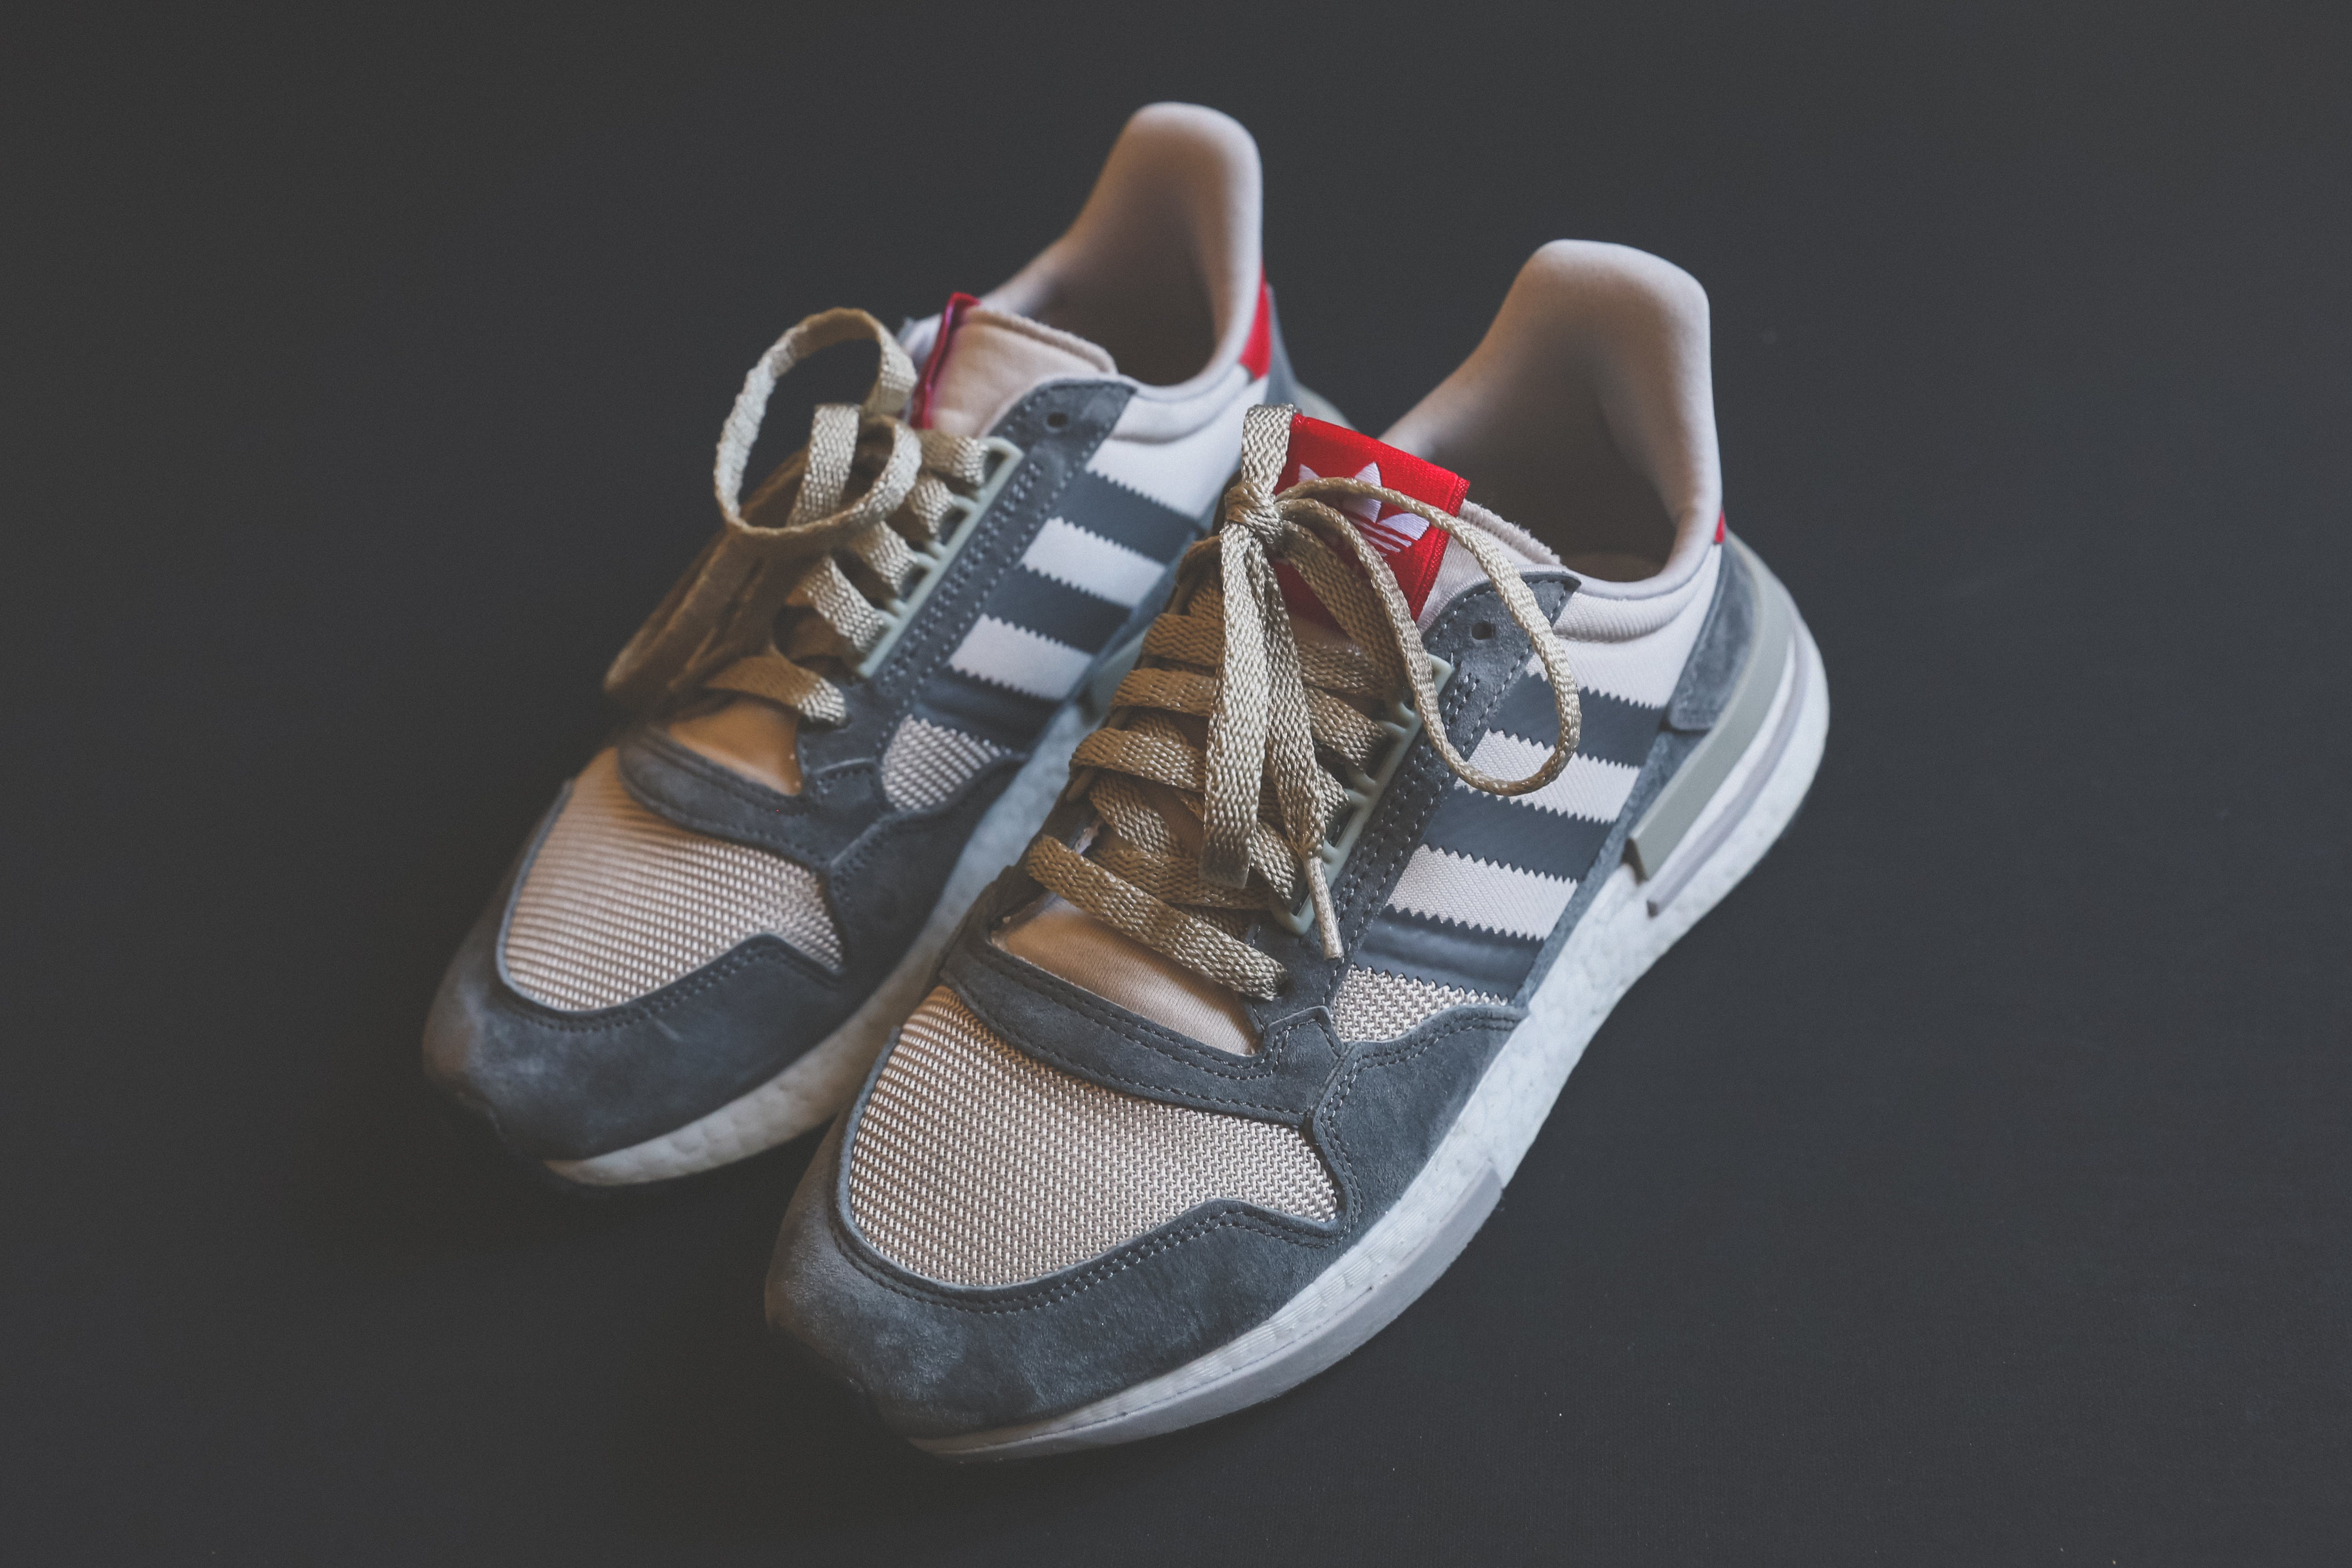 Close-Up Photo of Adidas Shoes